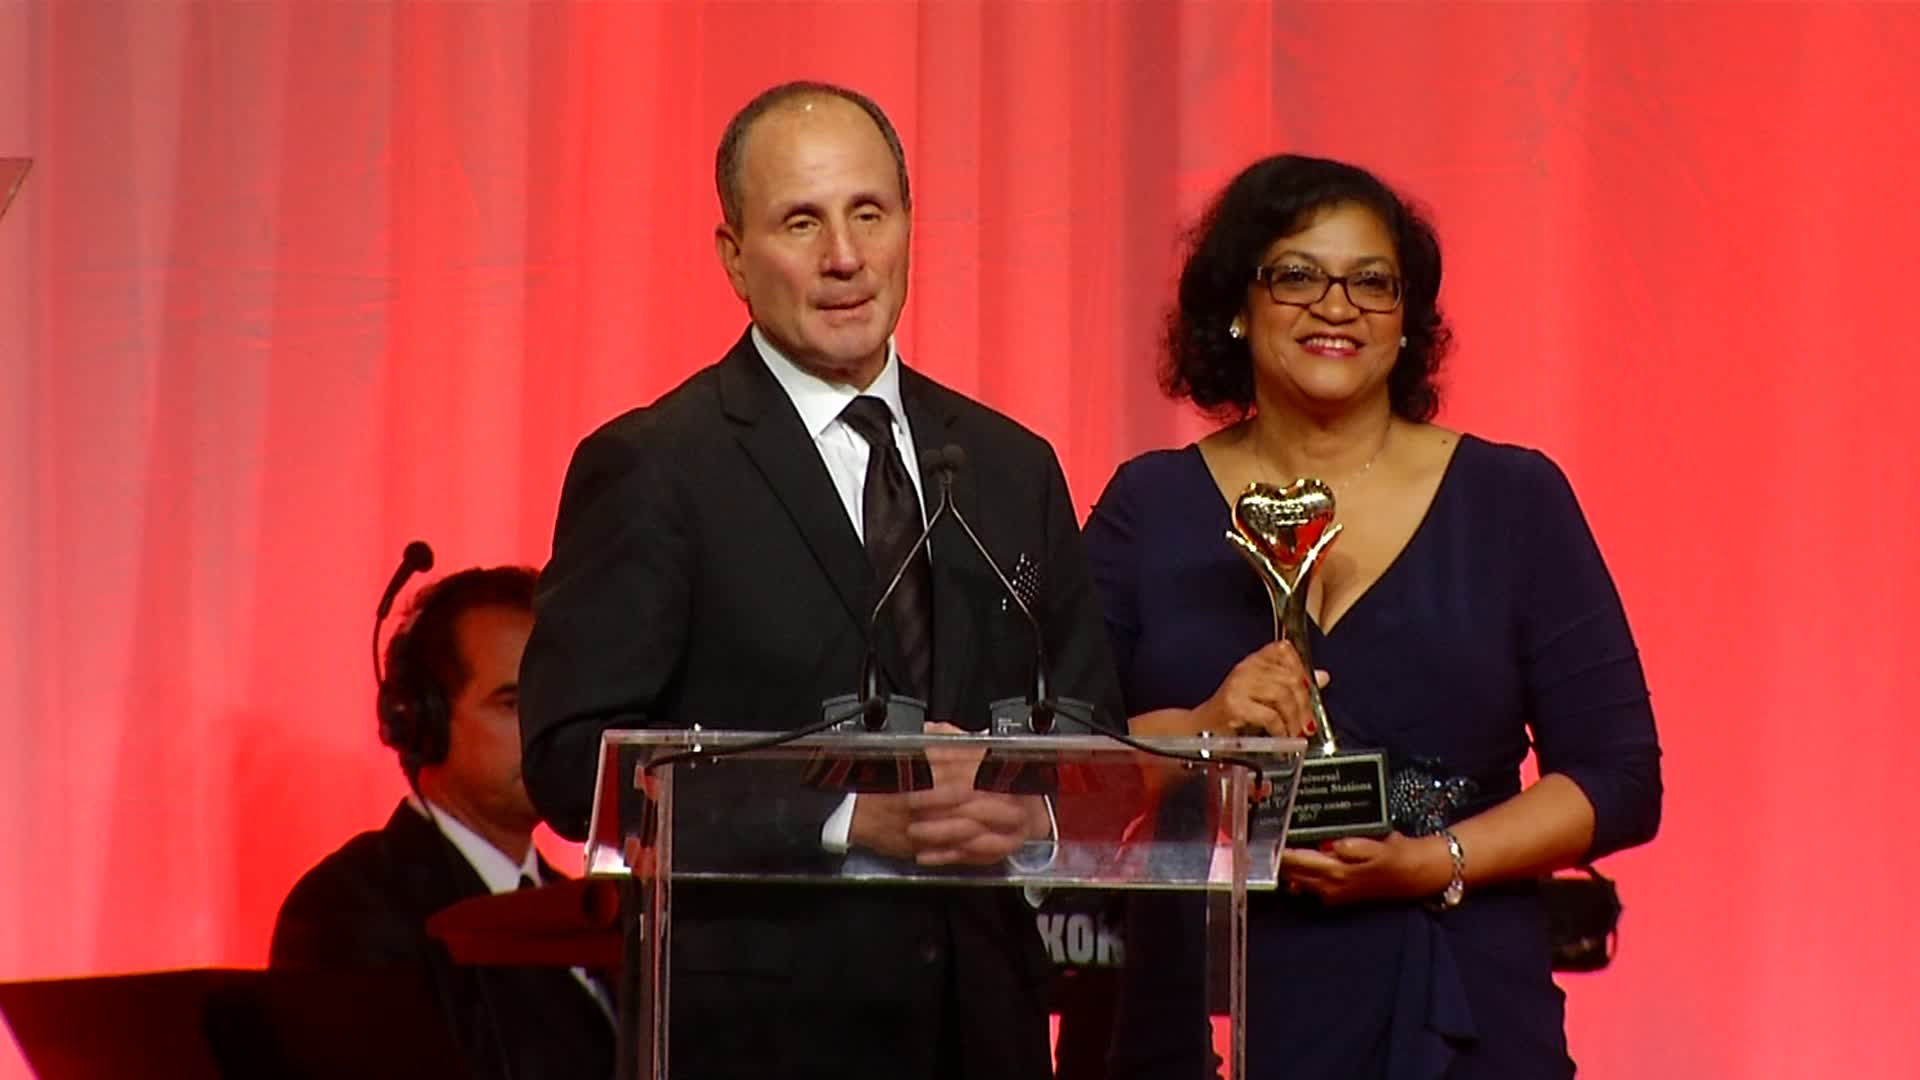 NBC 5 Recognized at Petco Foundation's Annual Awards Gala